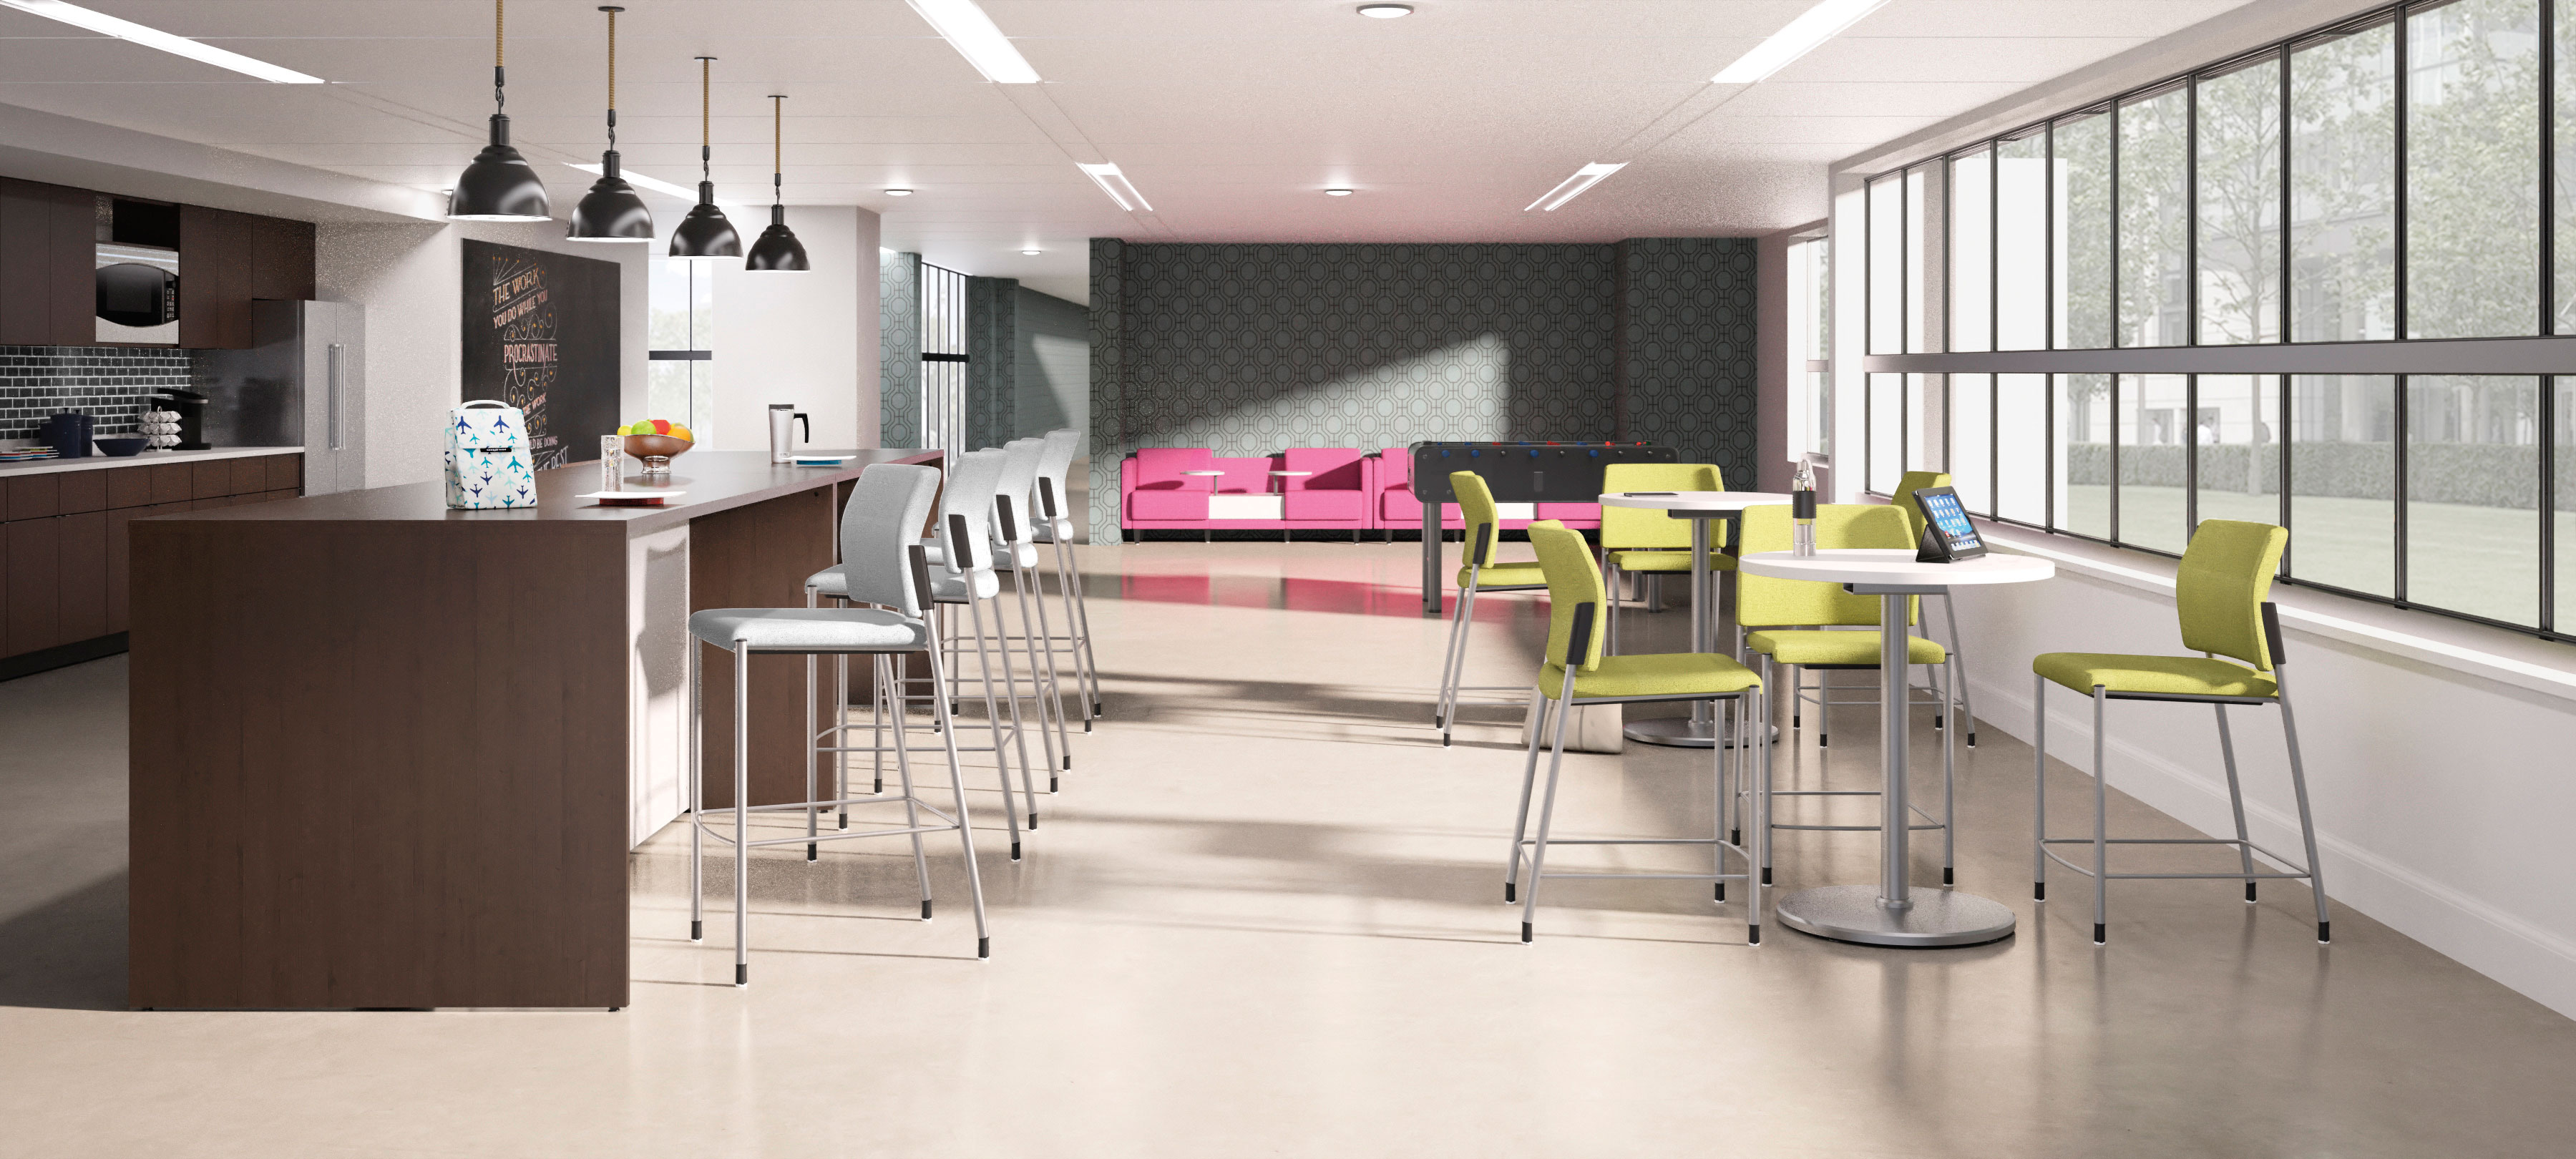 Collaborative Tables and Seating